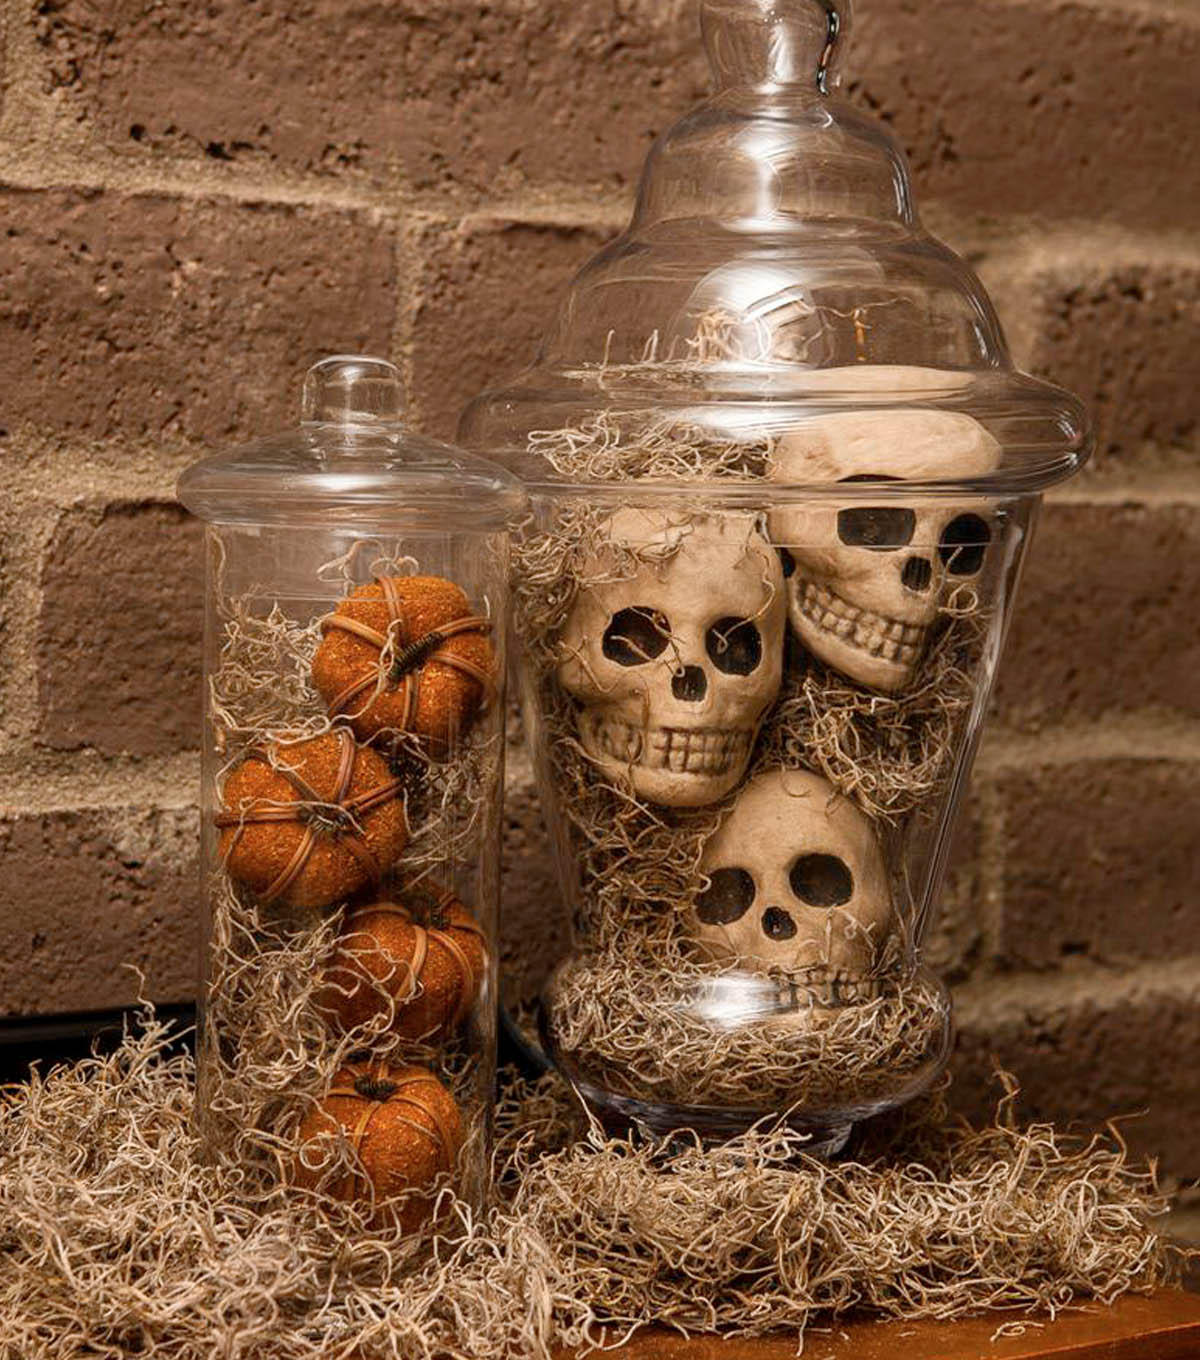 Apothecary Jars Add Panache to Everyday Decorations